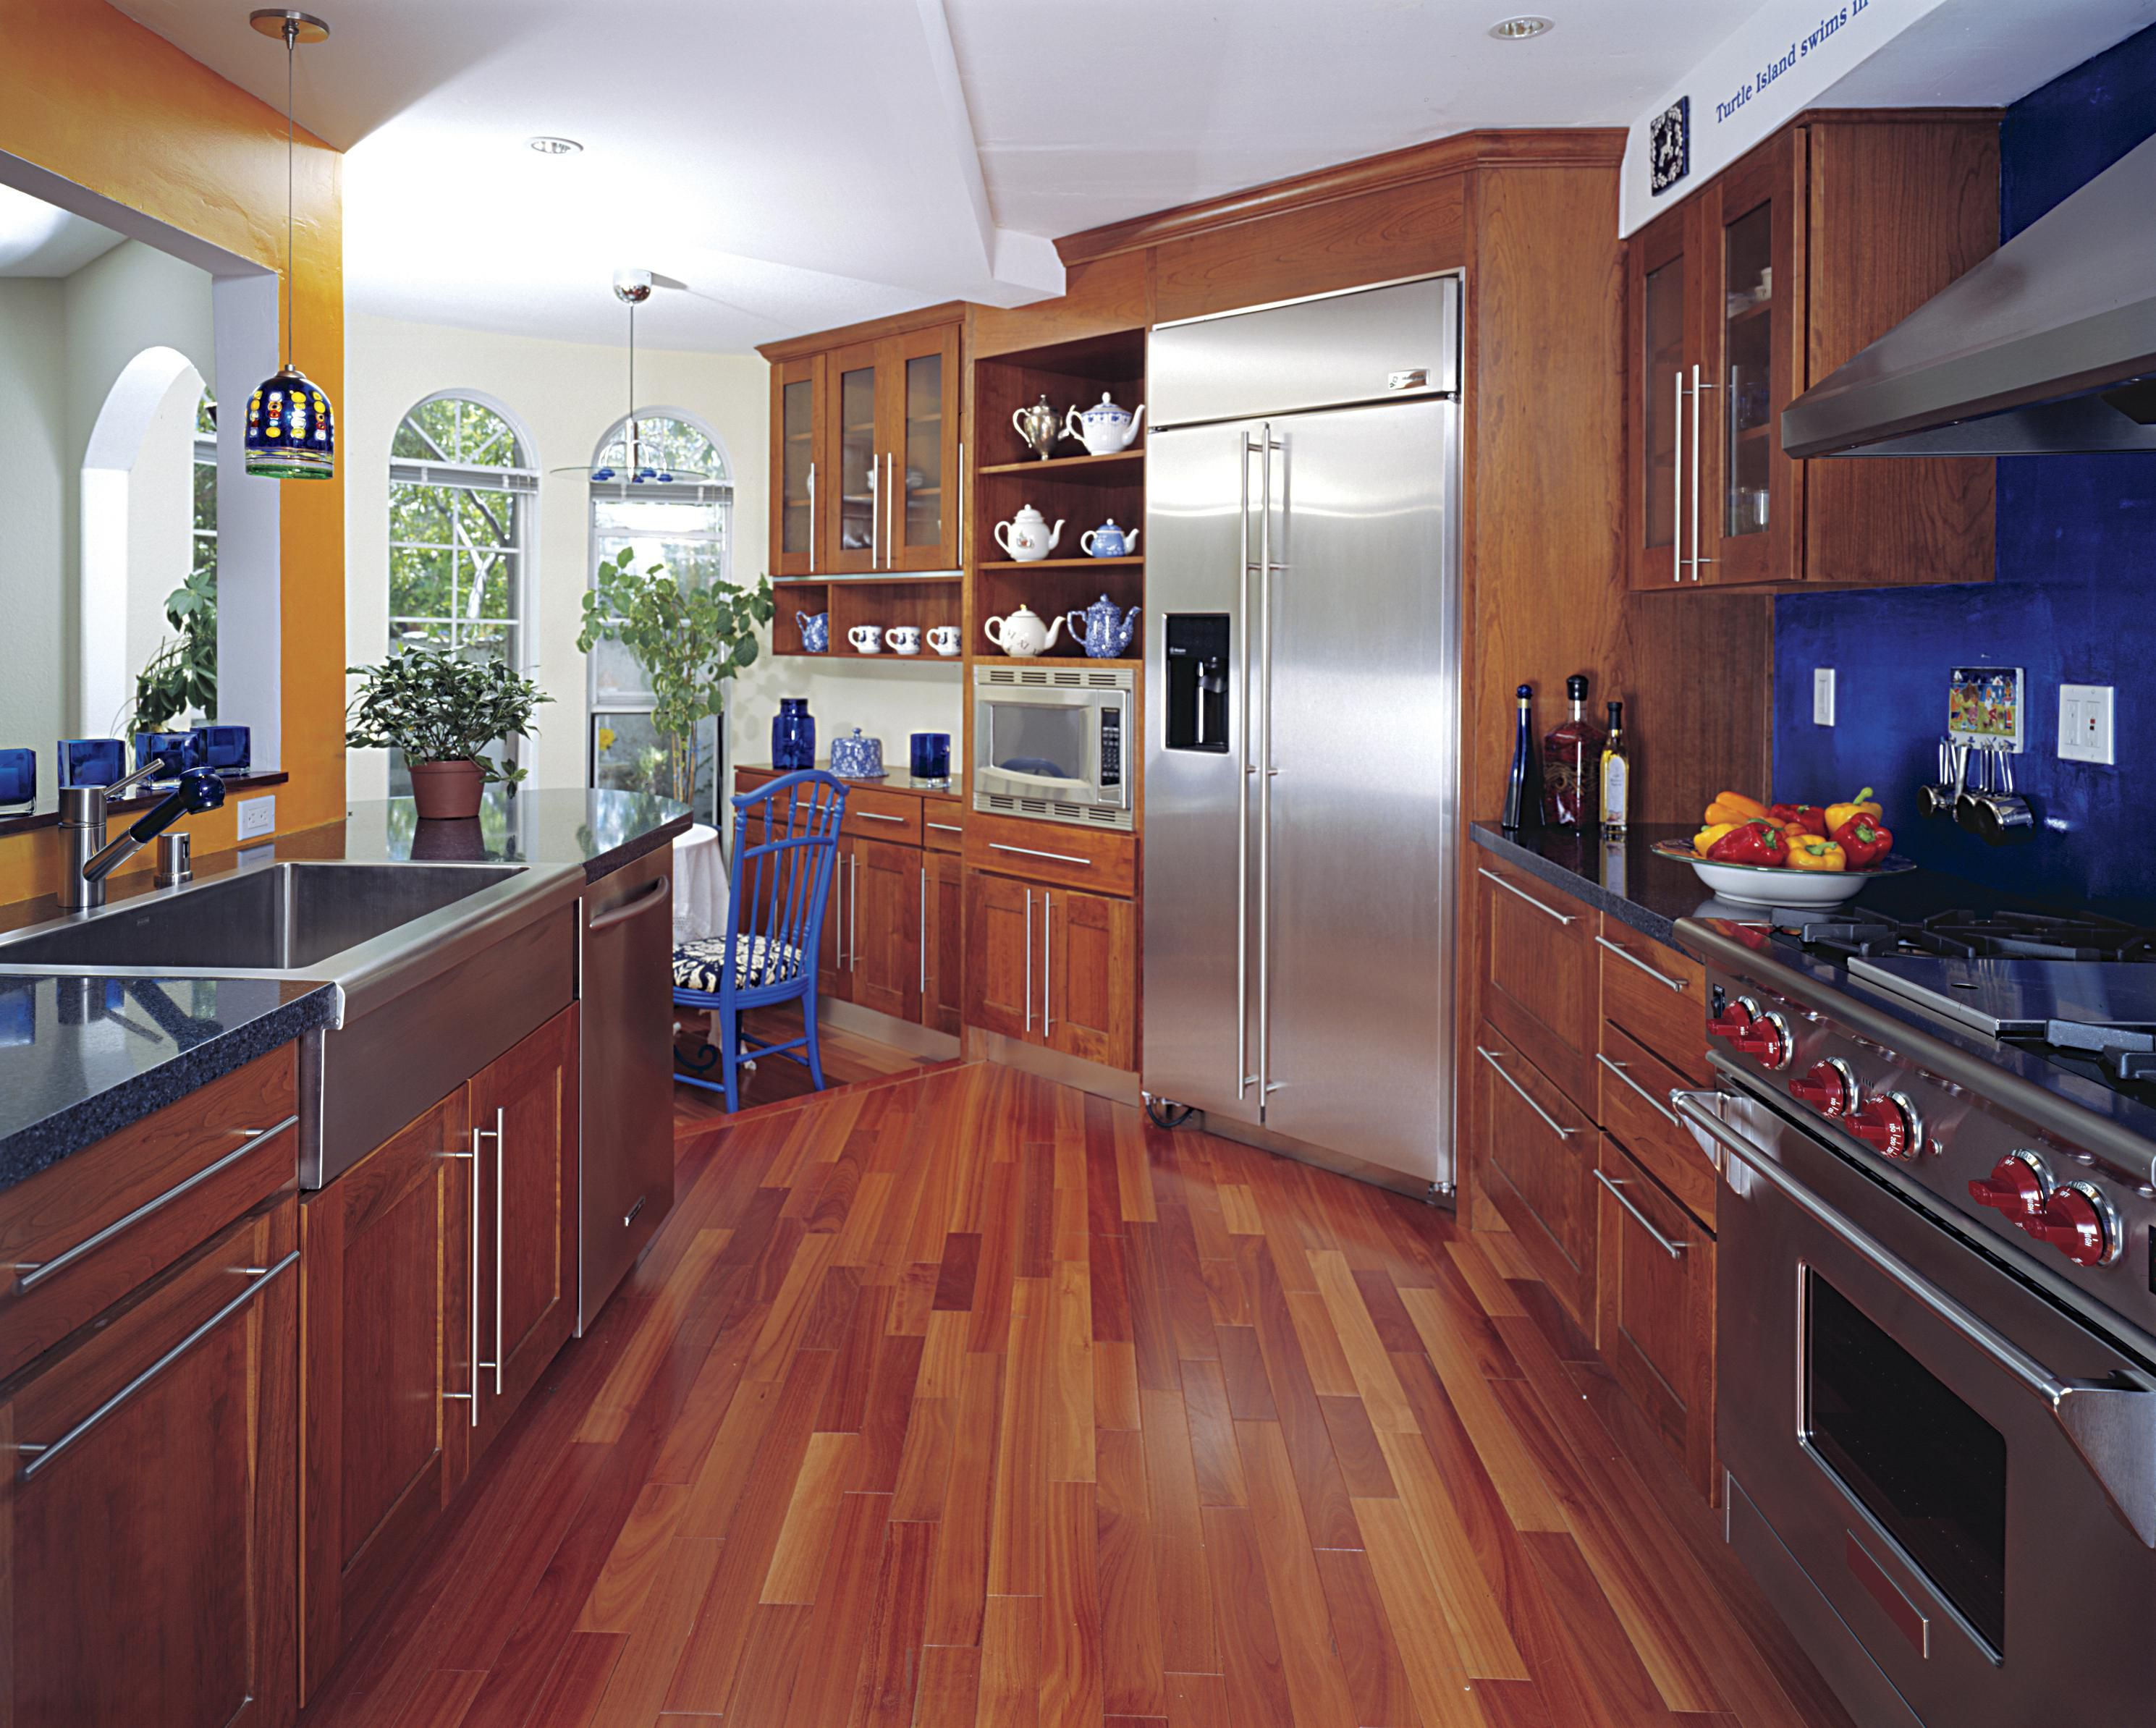 hardwood floor in a kitchen is this allowed On wood floors in kitchens